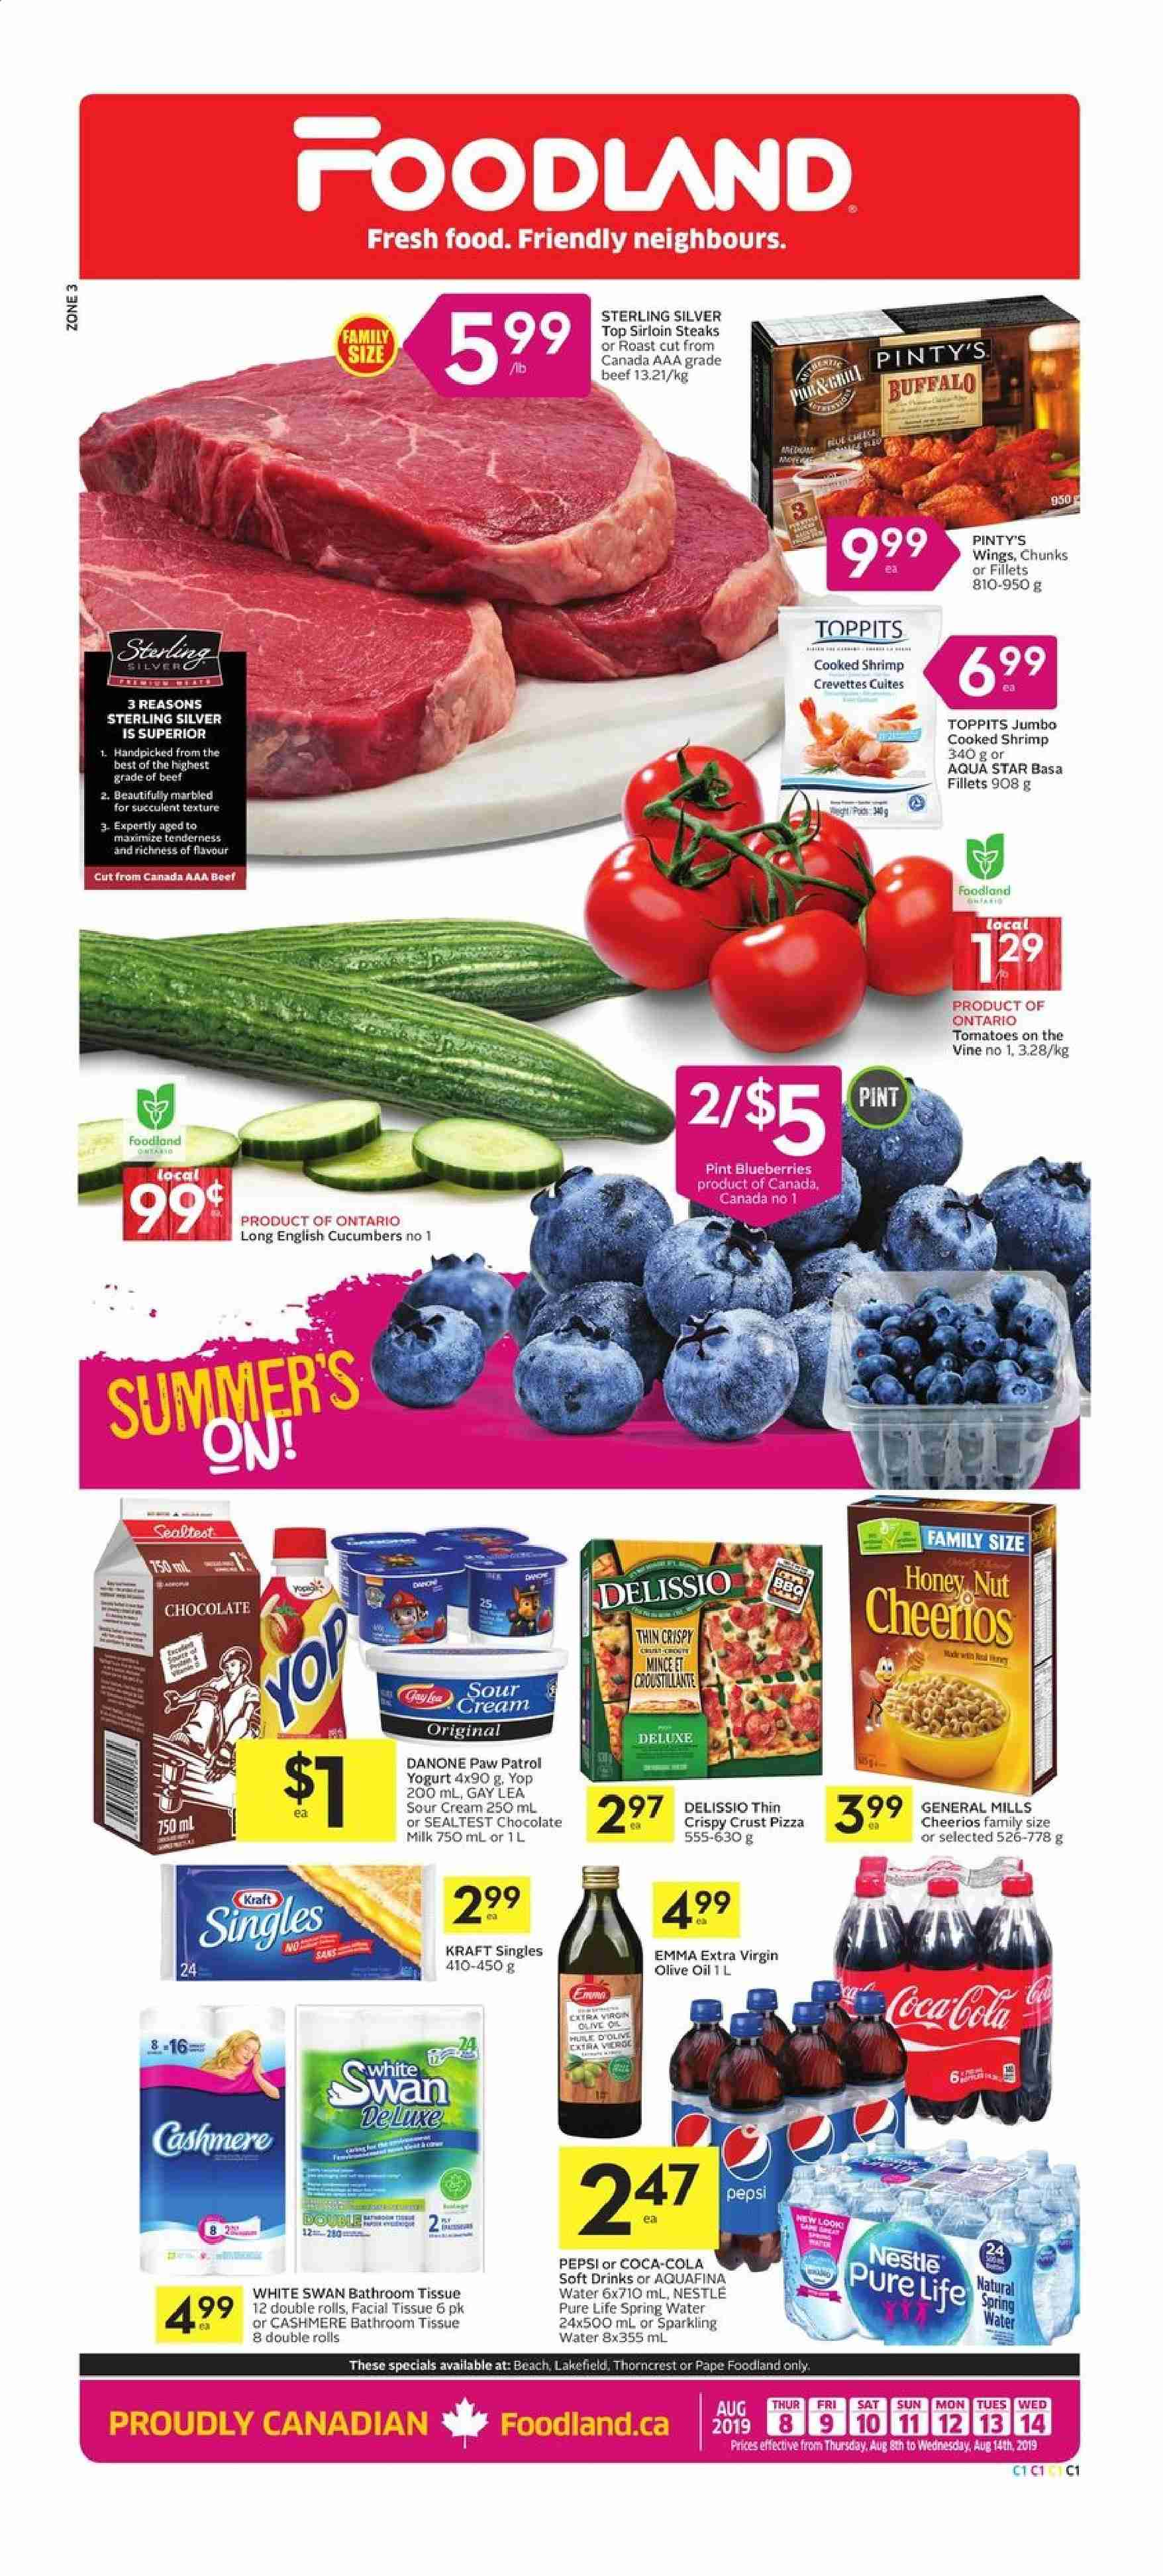 Foodland Flyer  - August 08, 2019 - August 14, 2019. Page 1.